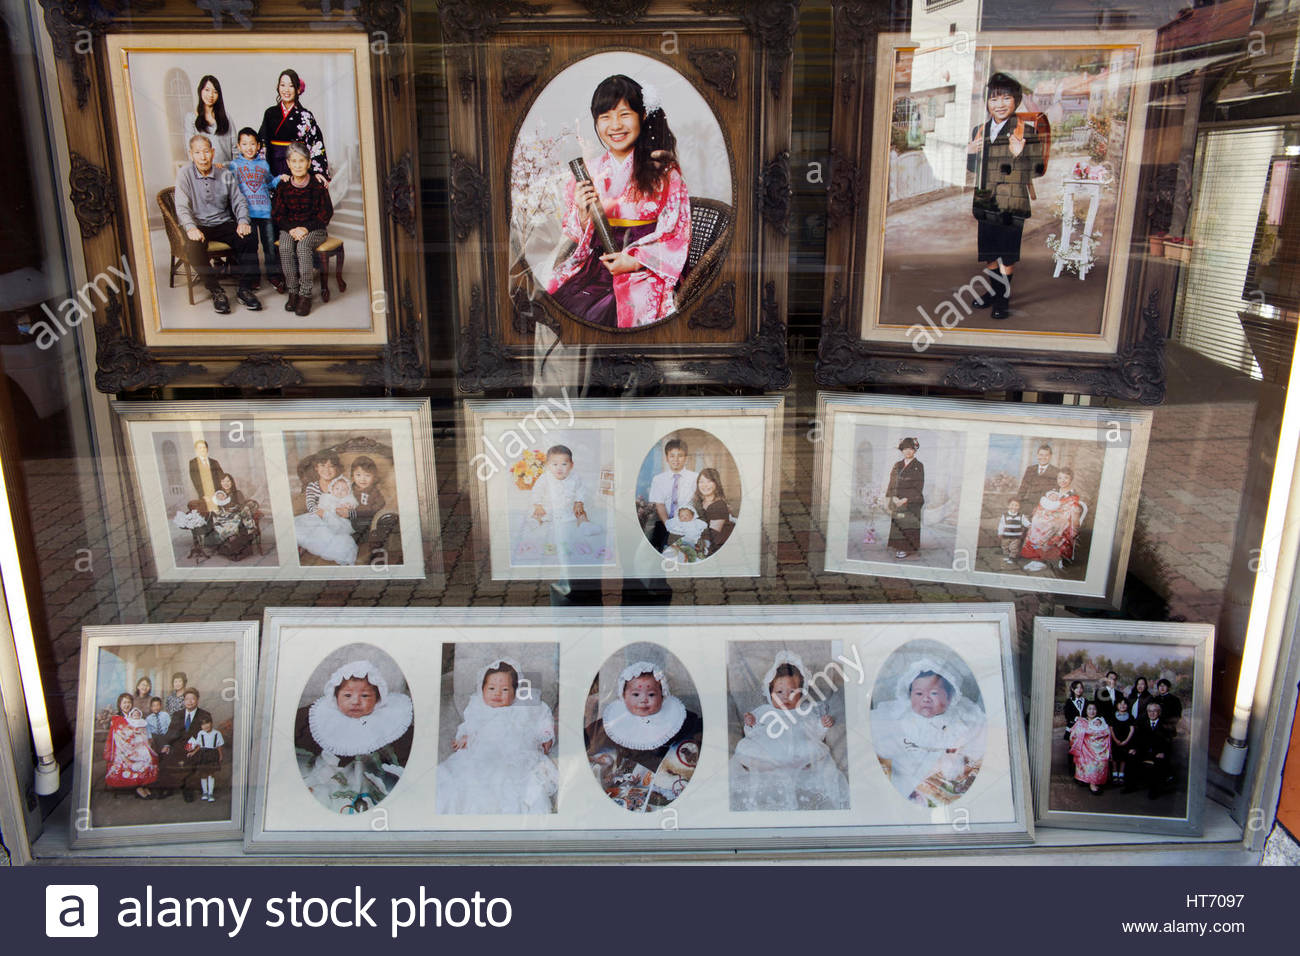 window display of photography studio and shop in Japan - Stock Image